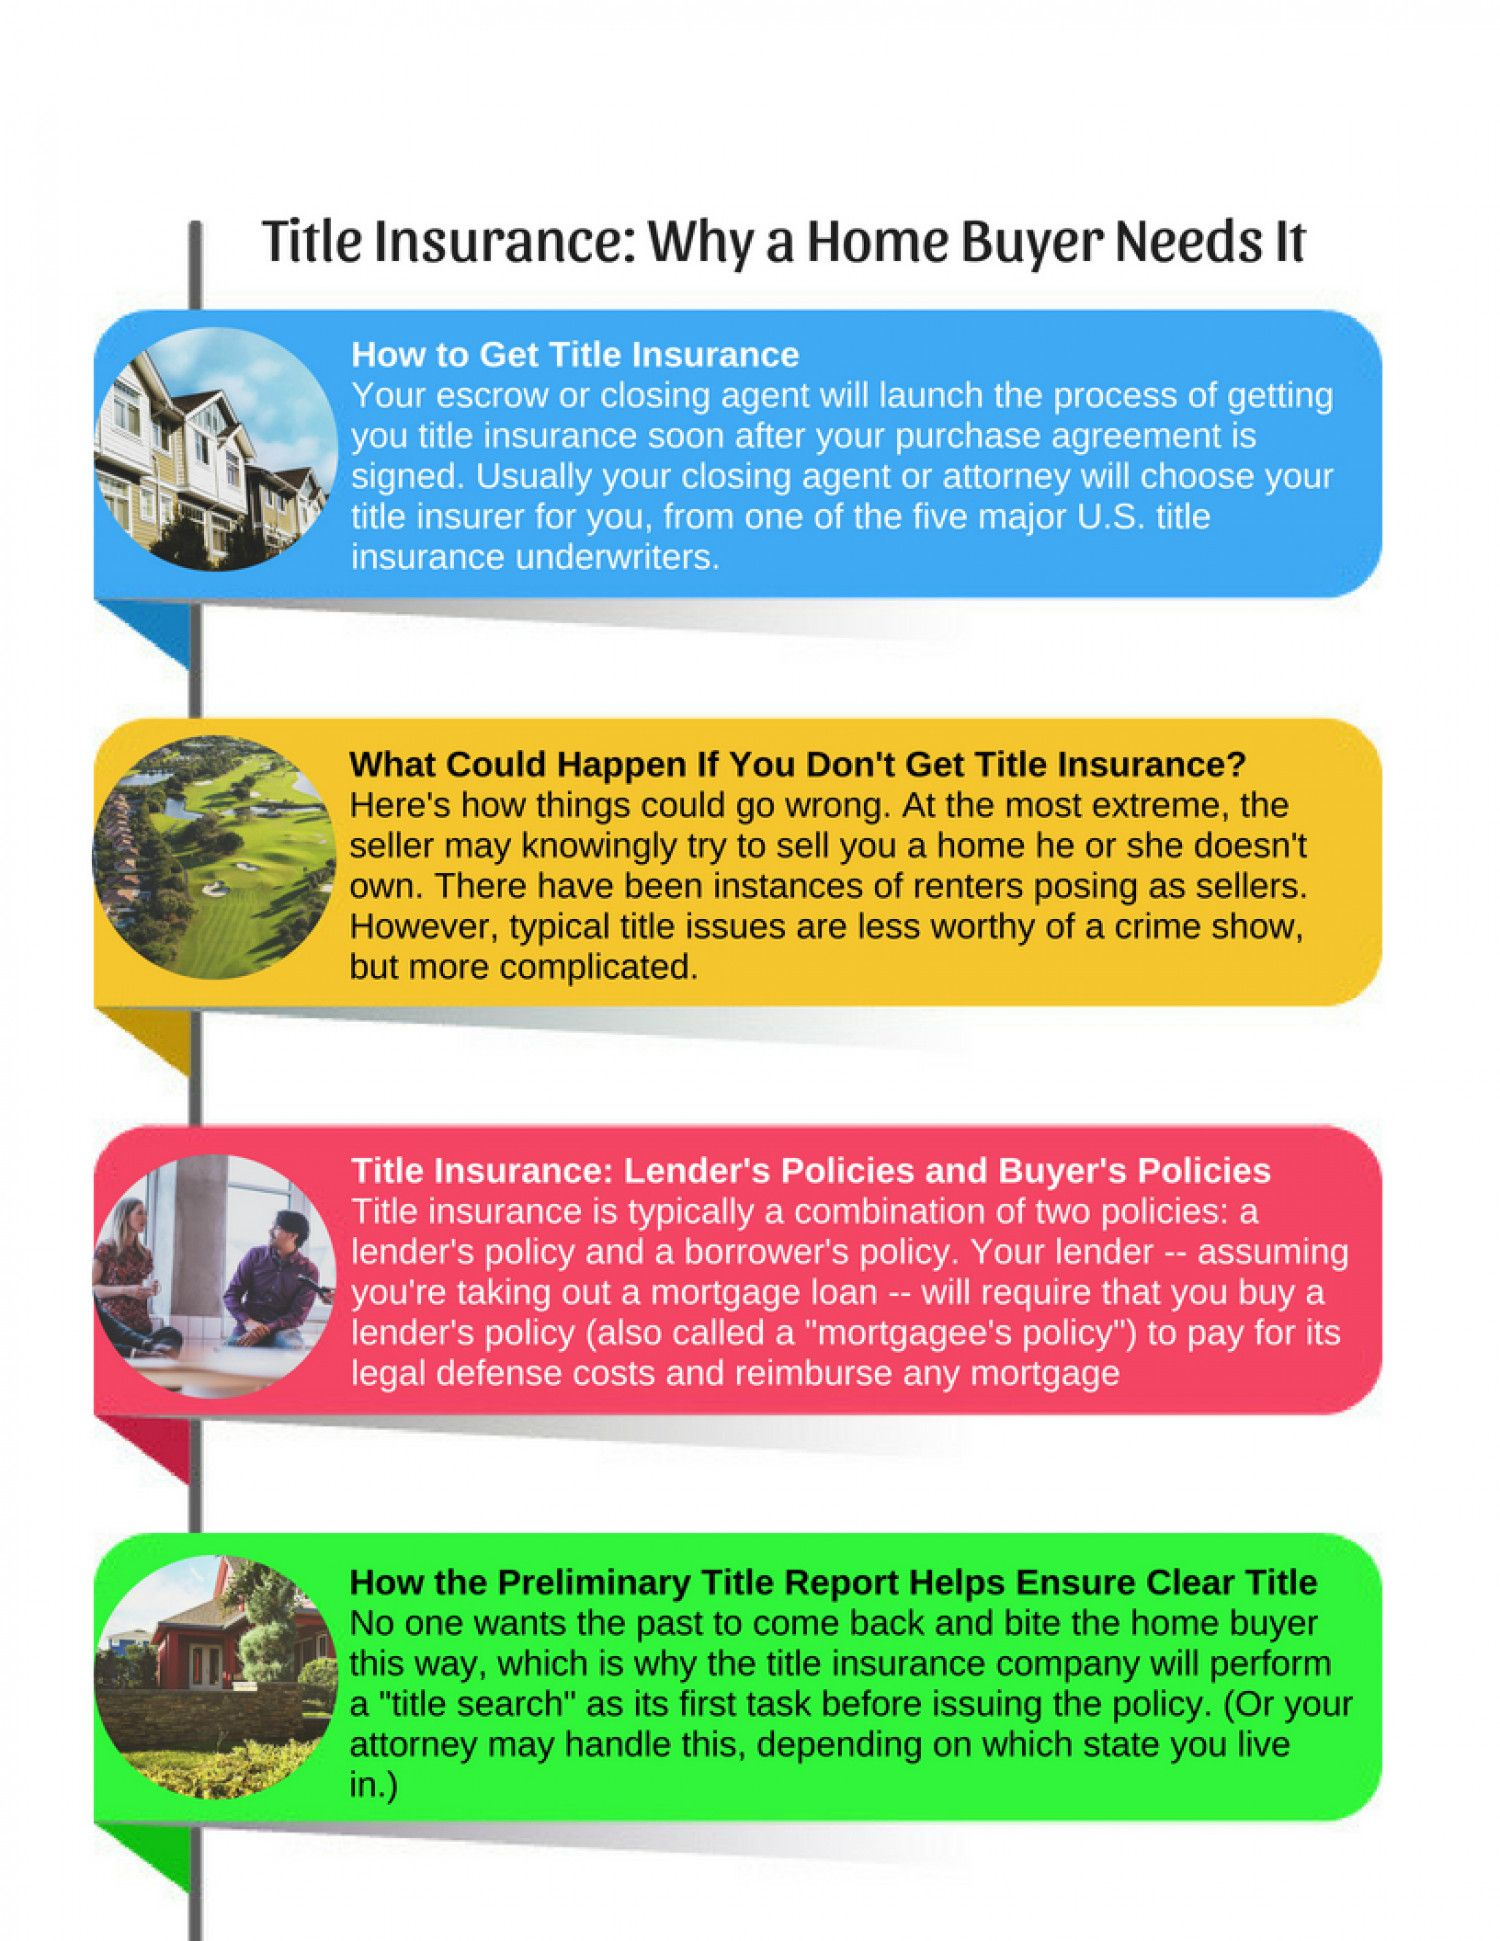 Getting Title Insurance Is One Of The Standard Steps Home Buyers